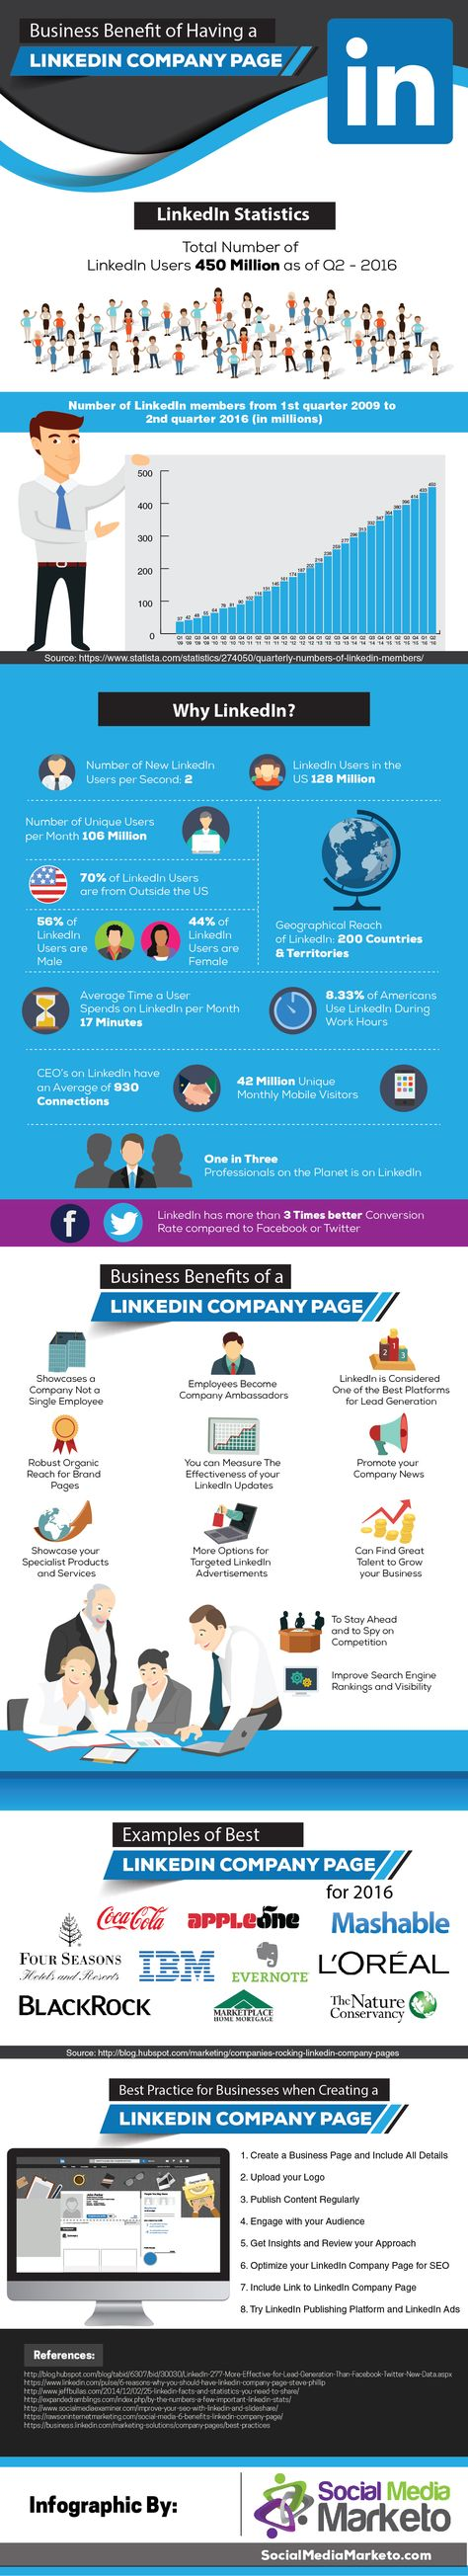 The Business Benefits of a LinkedIn Company Page [Infographic]